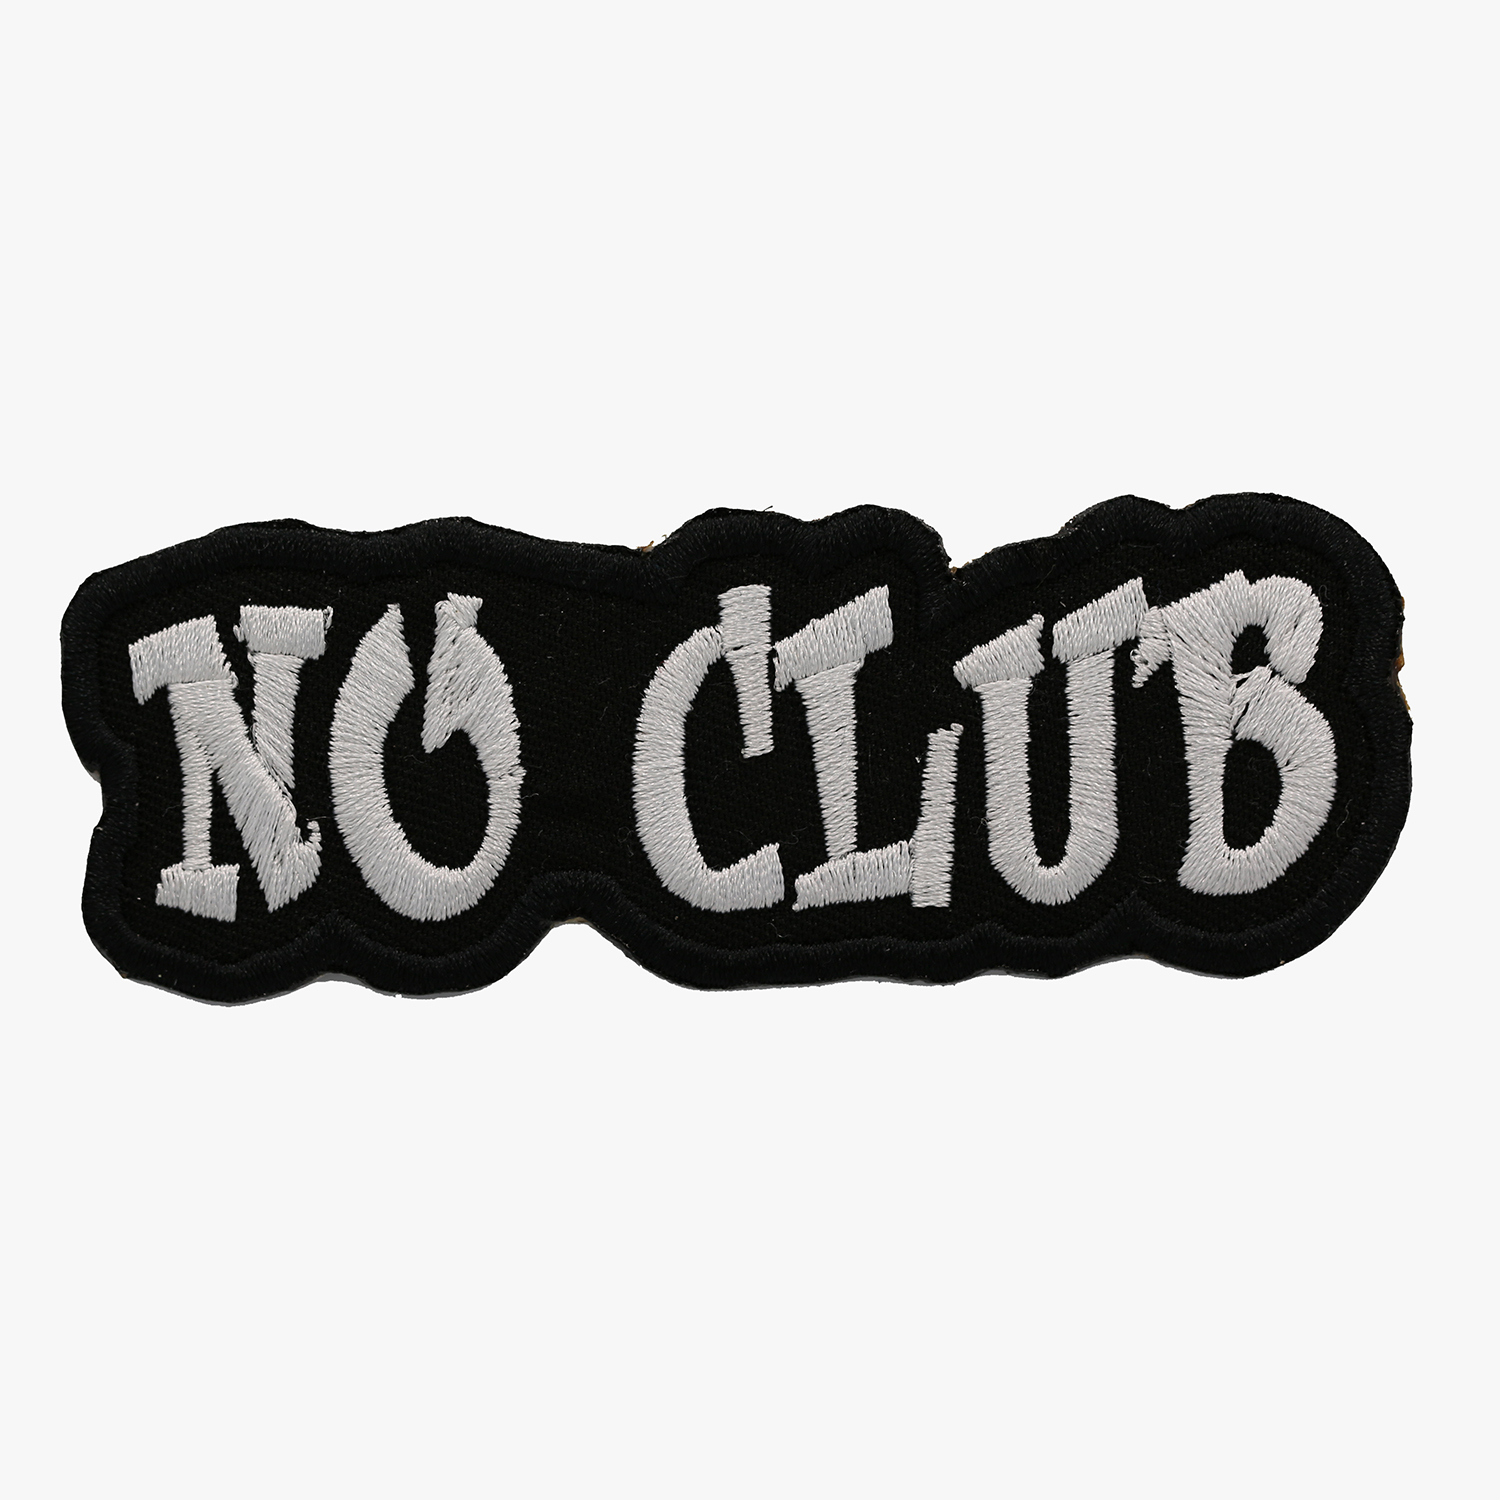 New No Club Lone Motorcycle Rider Embroidered Patch